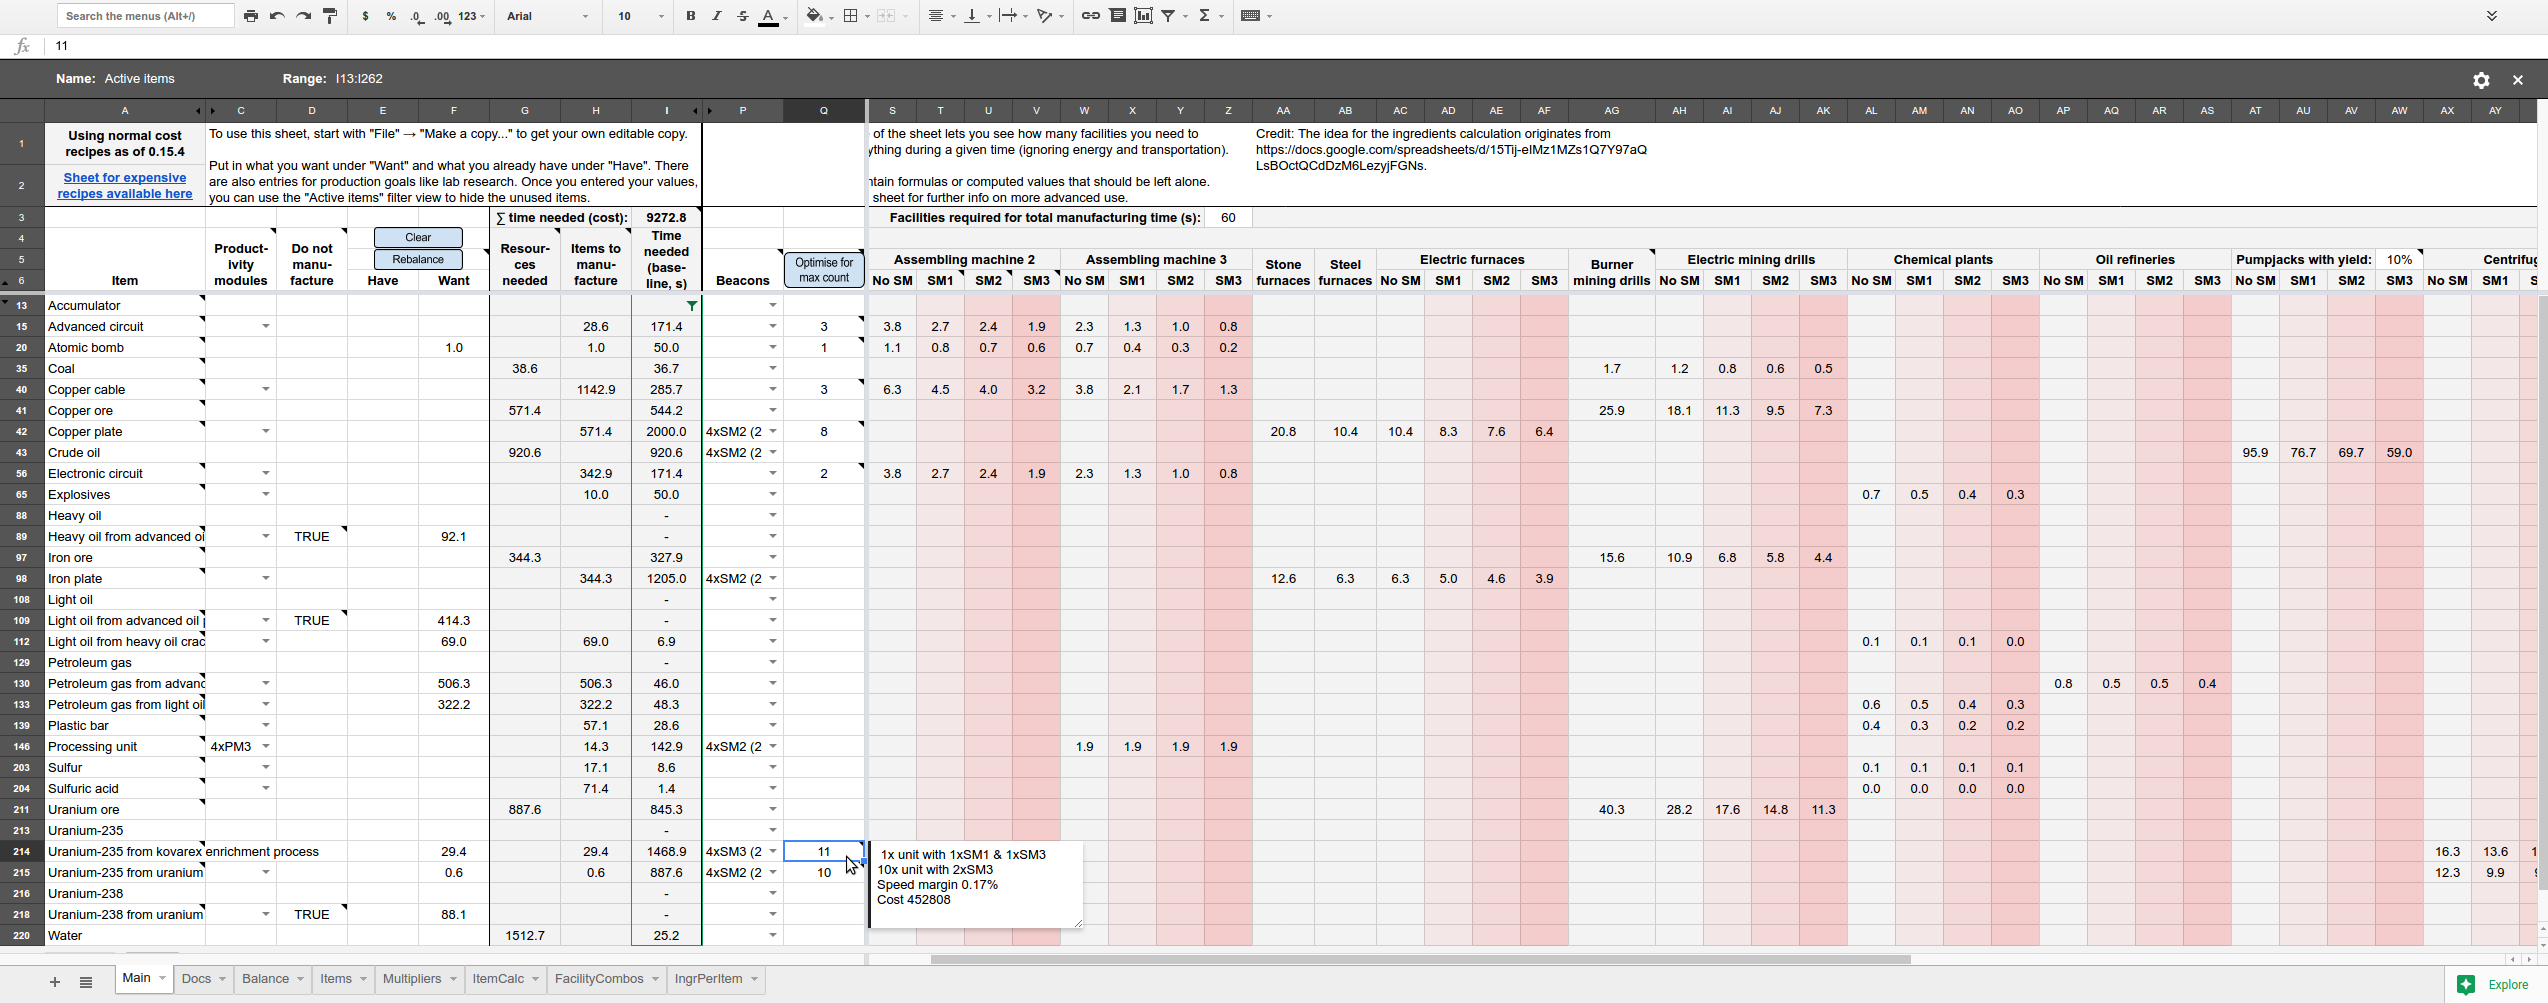 Raw Feeding Spreadsheet Inside Production Calculator Google Sheet [0.16]  Factorio Forums